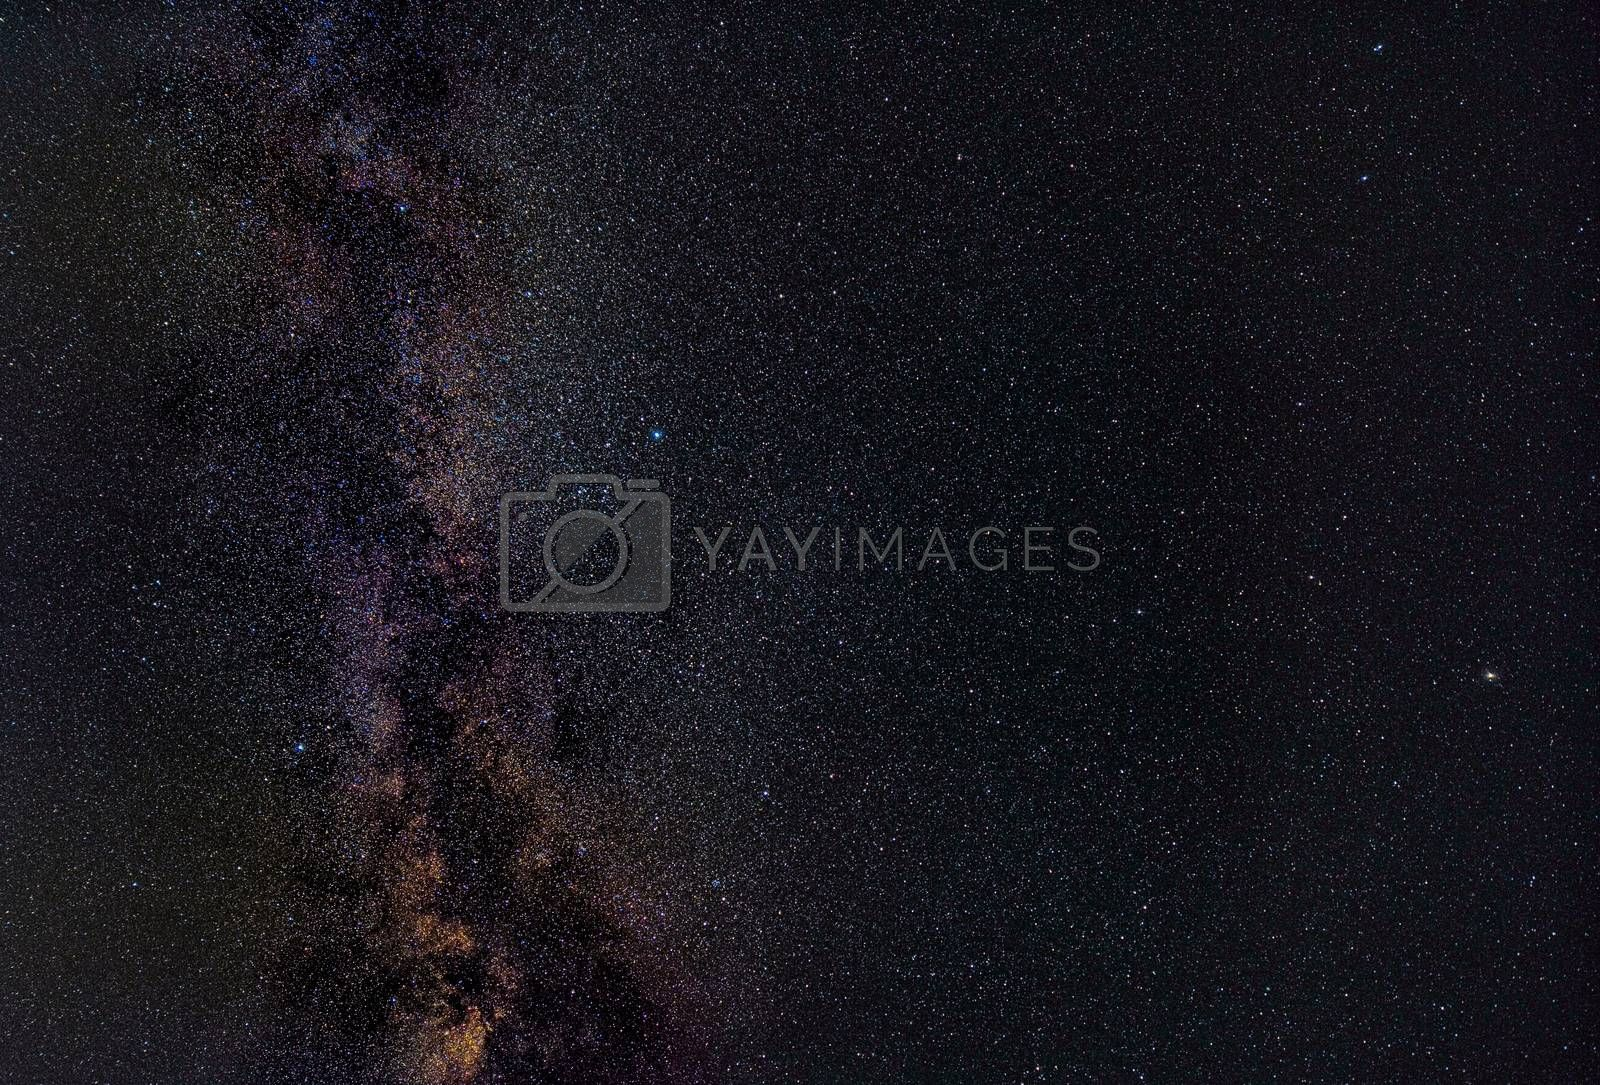 The Milky Way and a million other stars